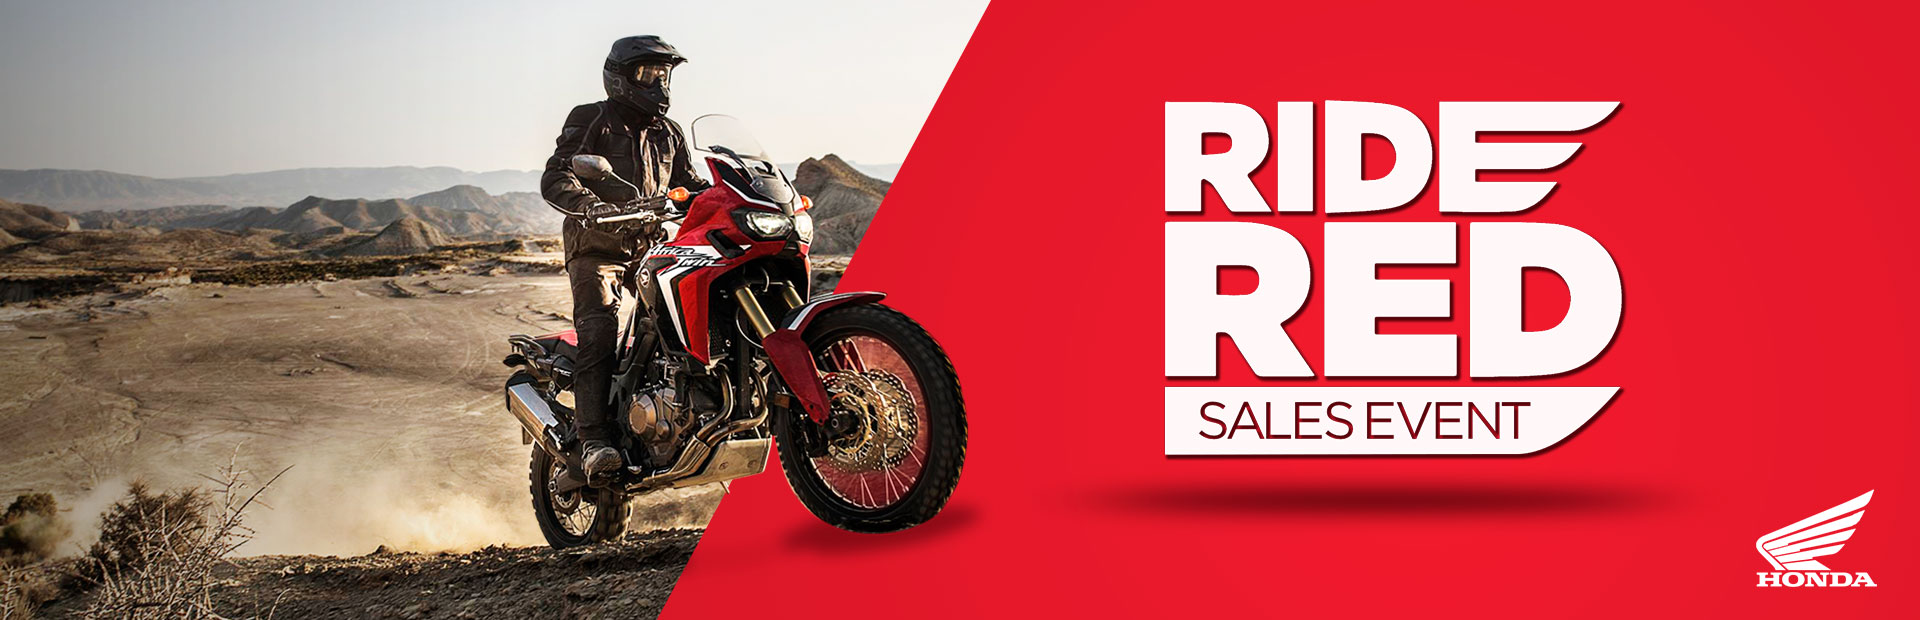 Honda: Ride Red Sales Event - Motorcycles